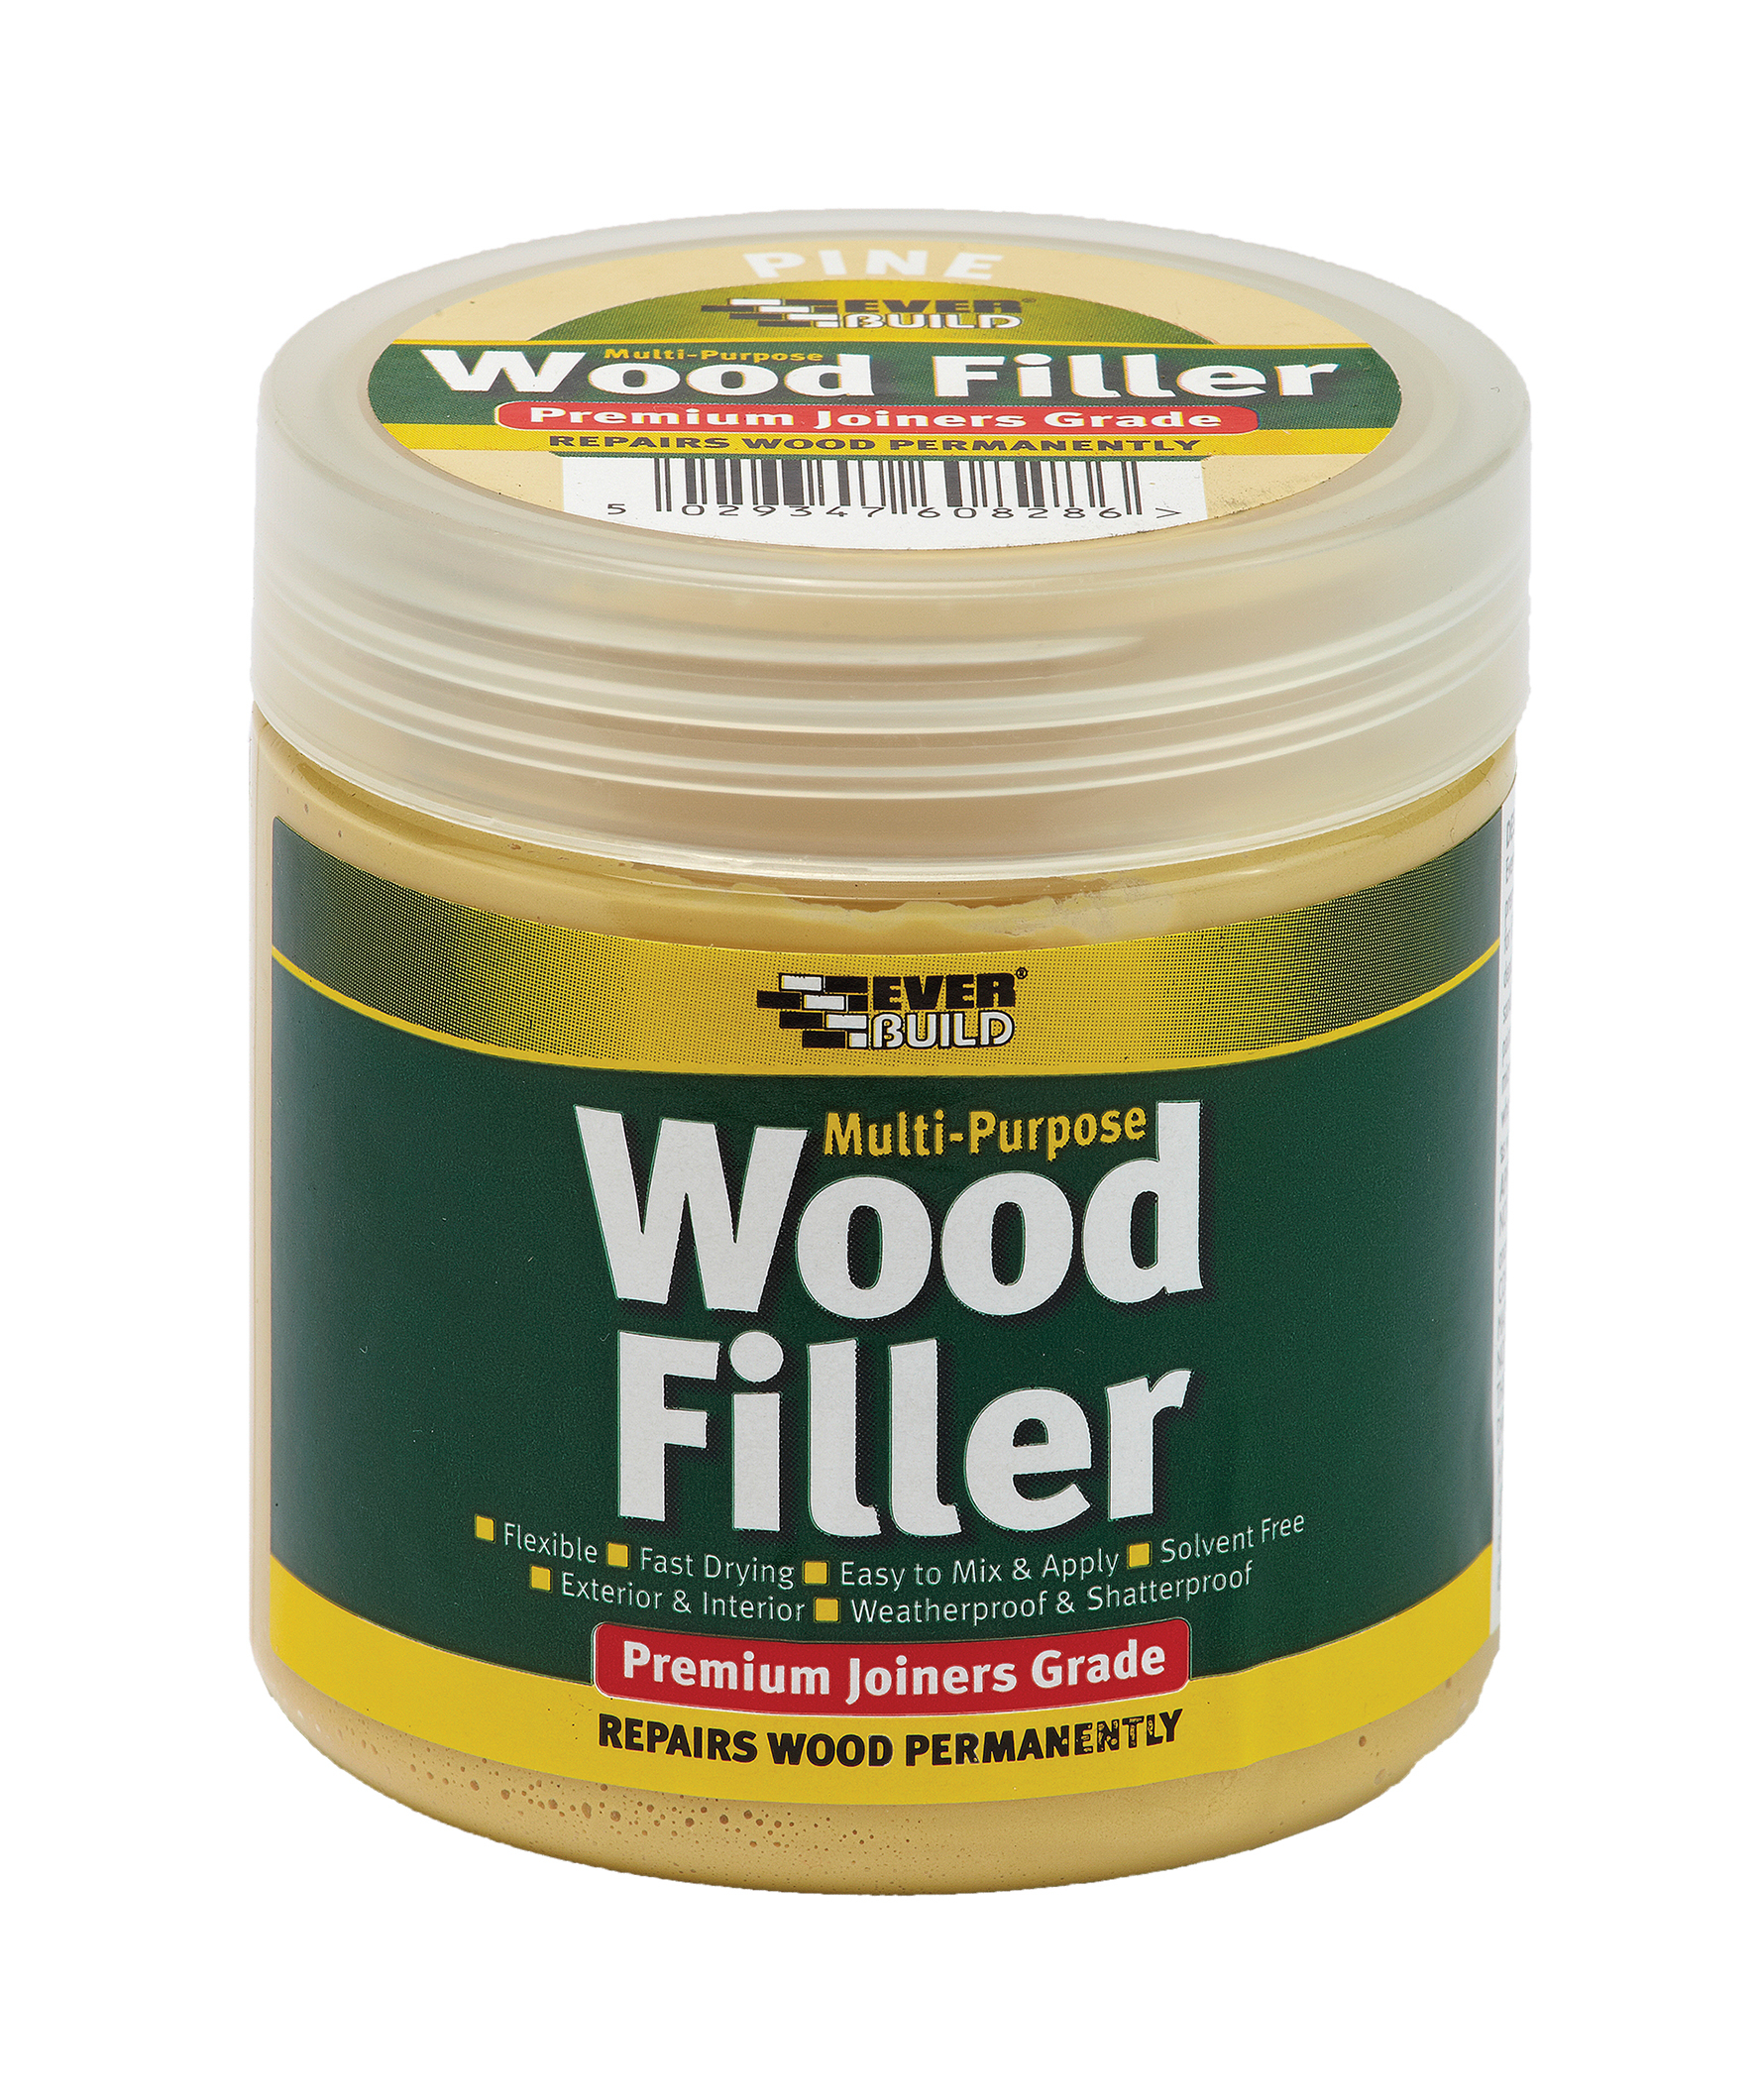 Everbuild Multi-Purpose 1-Part Wood Filler Medium Stainable